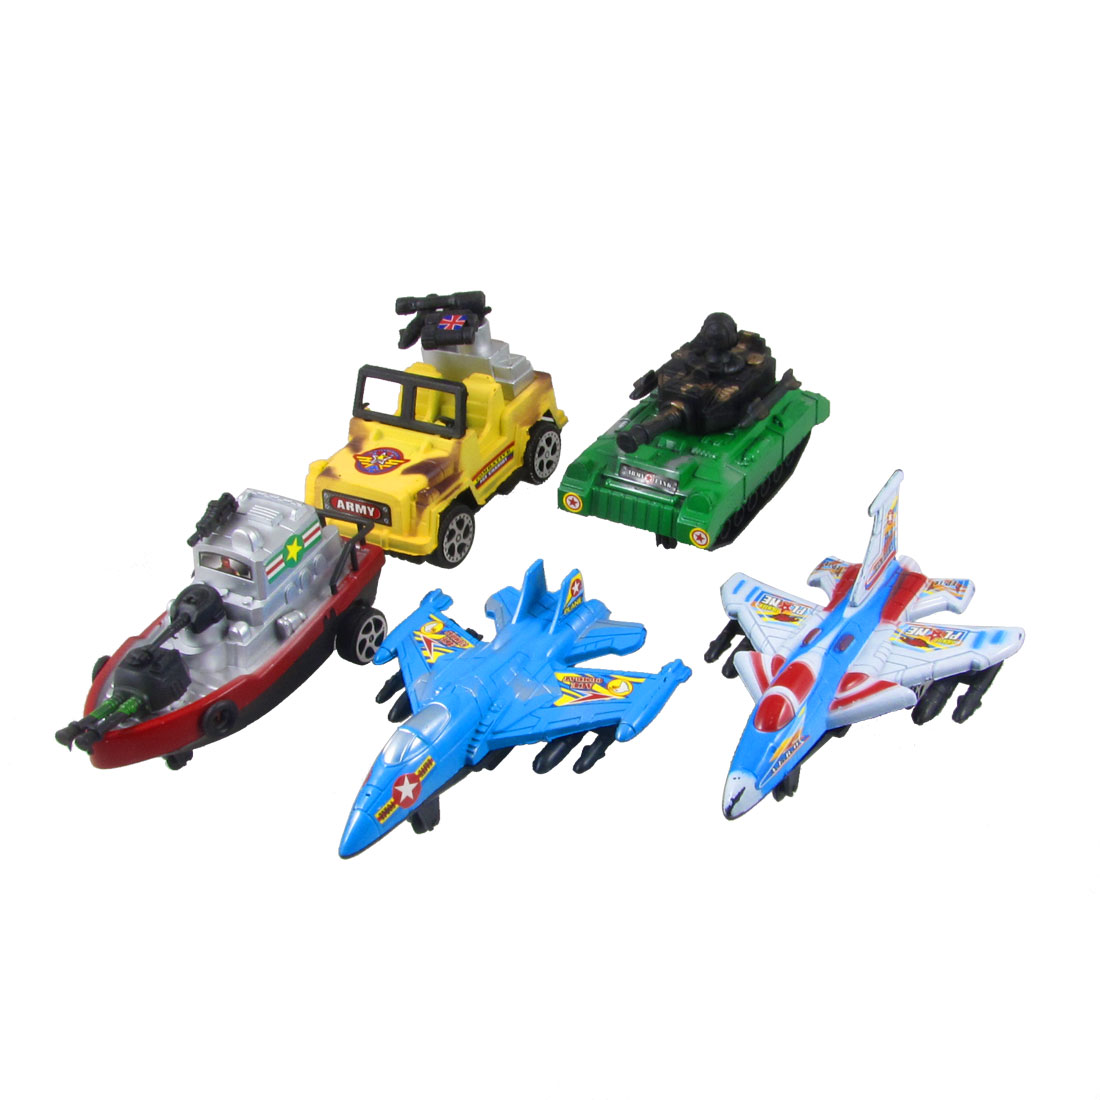 5 in 1 Colorful Plastic Panzer Tank Plane Toy for Children